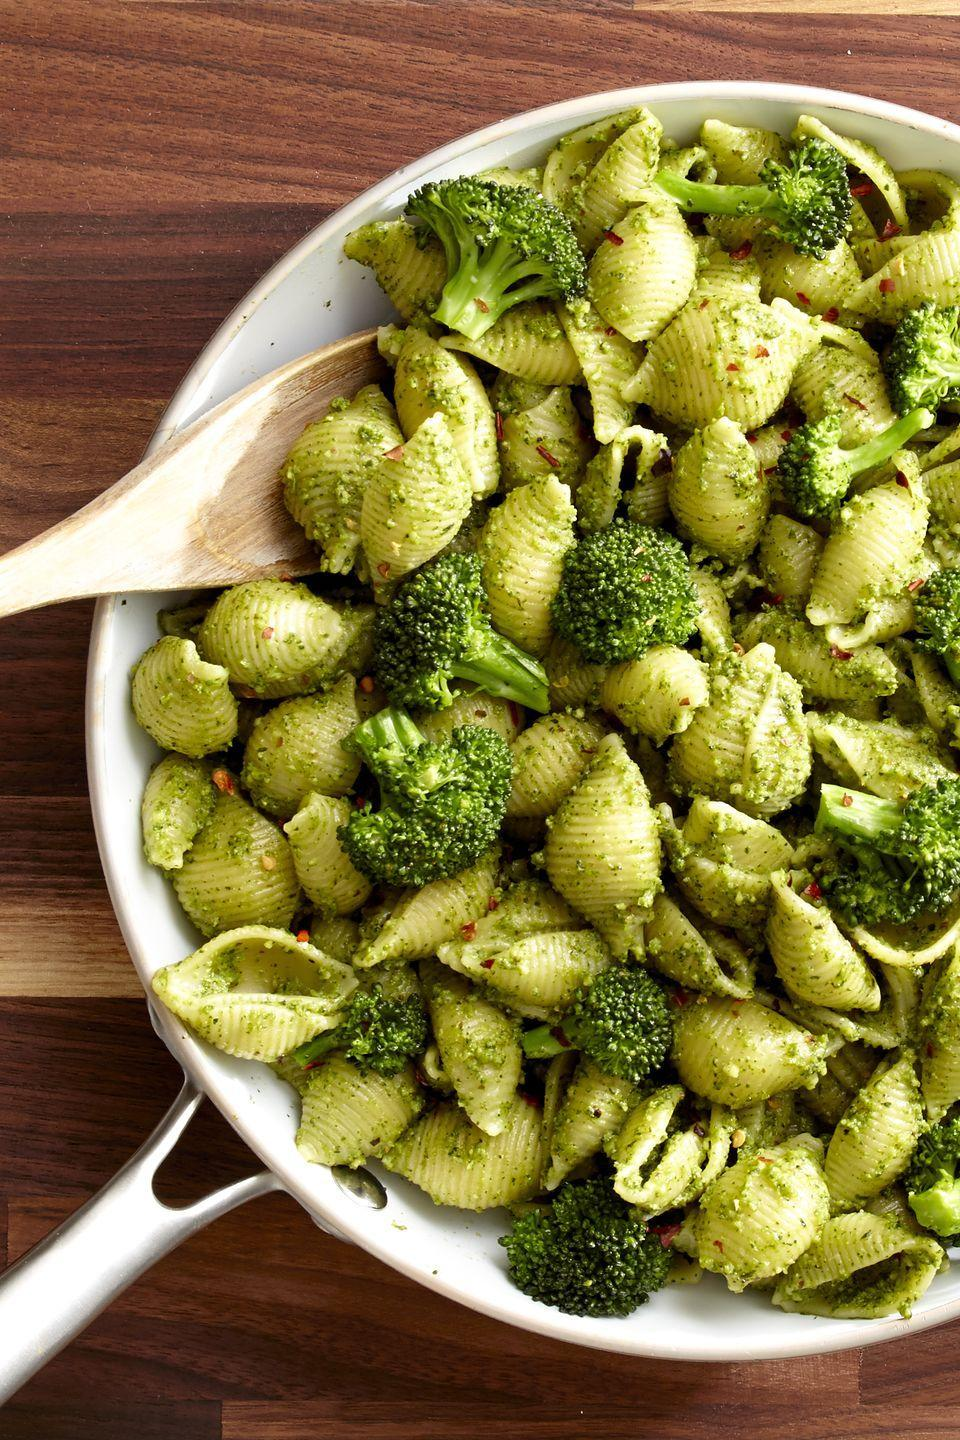 "<p>Get your broccoli on with this delicious pesto.</p><p>Get the recipe from <a href=""https://www.delish.com/cooking/recipes/a46634/broccoli-pesto-recipe/"" rel=""nofollow noopener"" target=""_blank"" data-ylk=""slk:Delish"" class=""link rapid-noclick-resp"">Delish</a>.<br></p>"